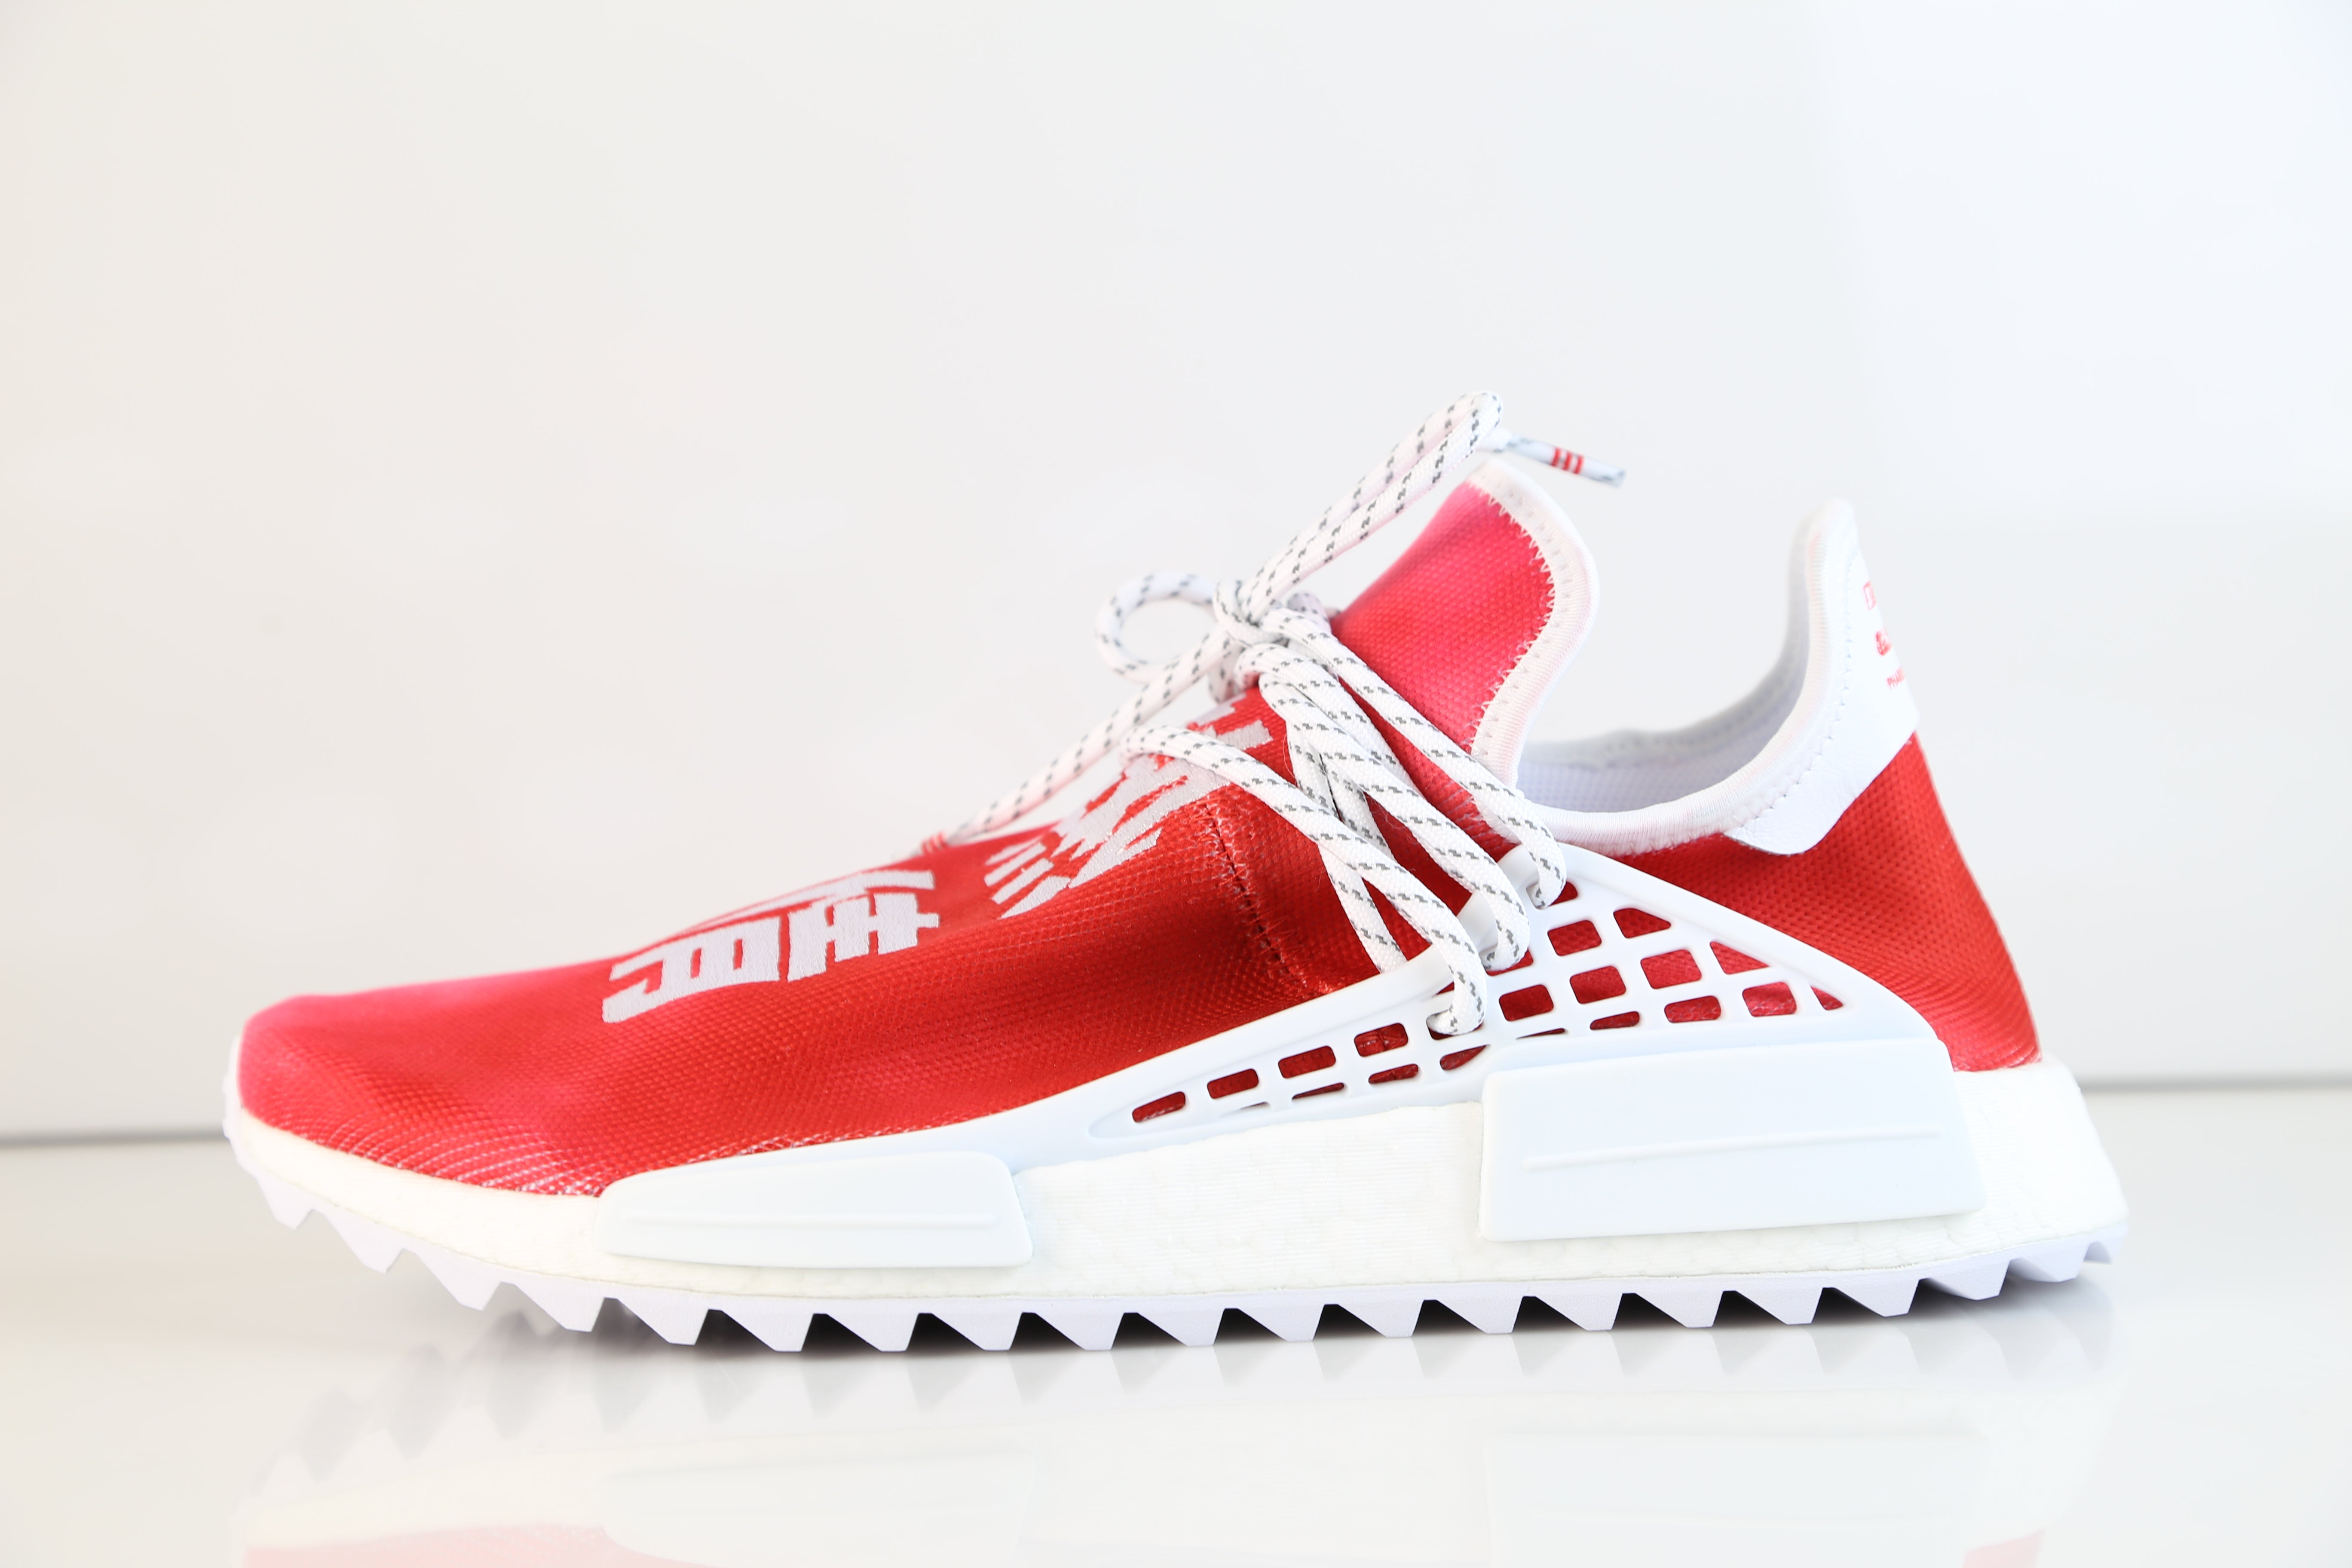 new arrival cd8cf 6e30c Adidas PW NMD Trail HU China Exclusive Passion Red White ...